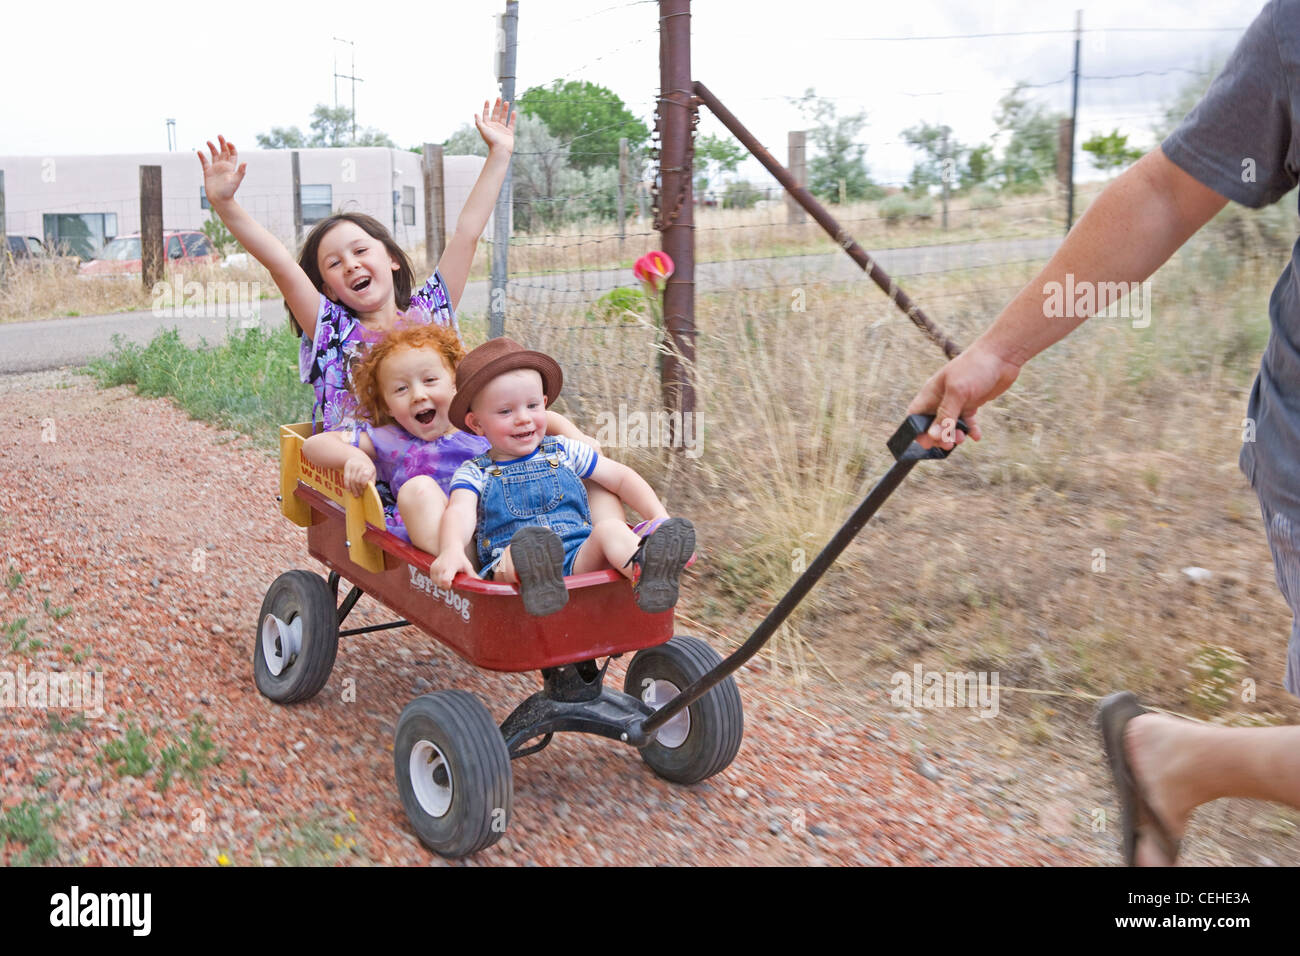 Three children being pulled in a wagon, screaming with excitement. - Stock Image